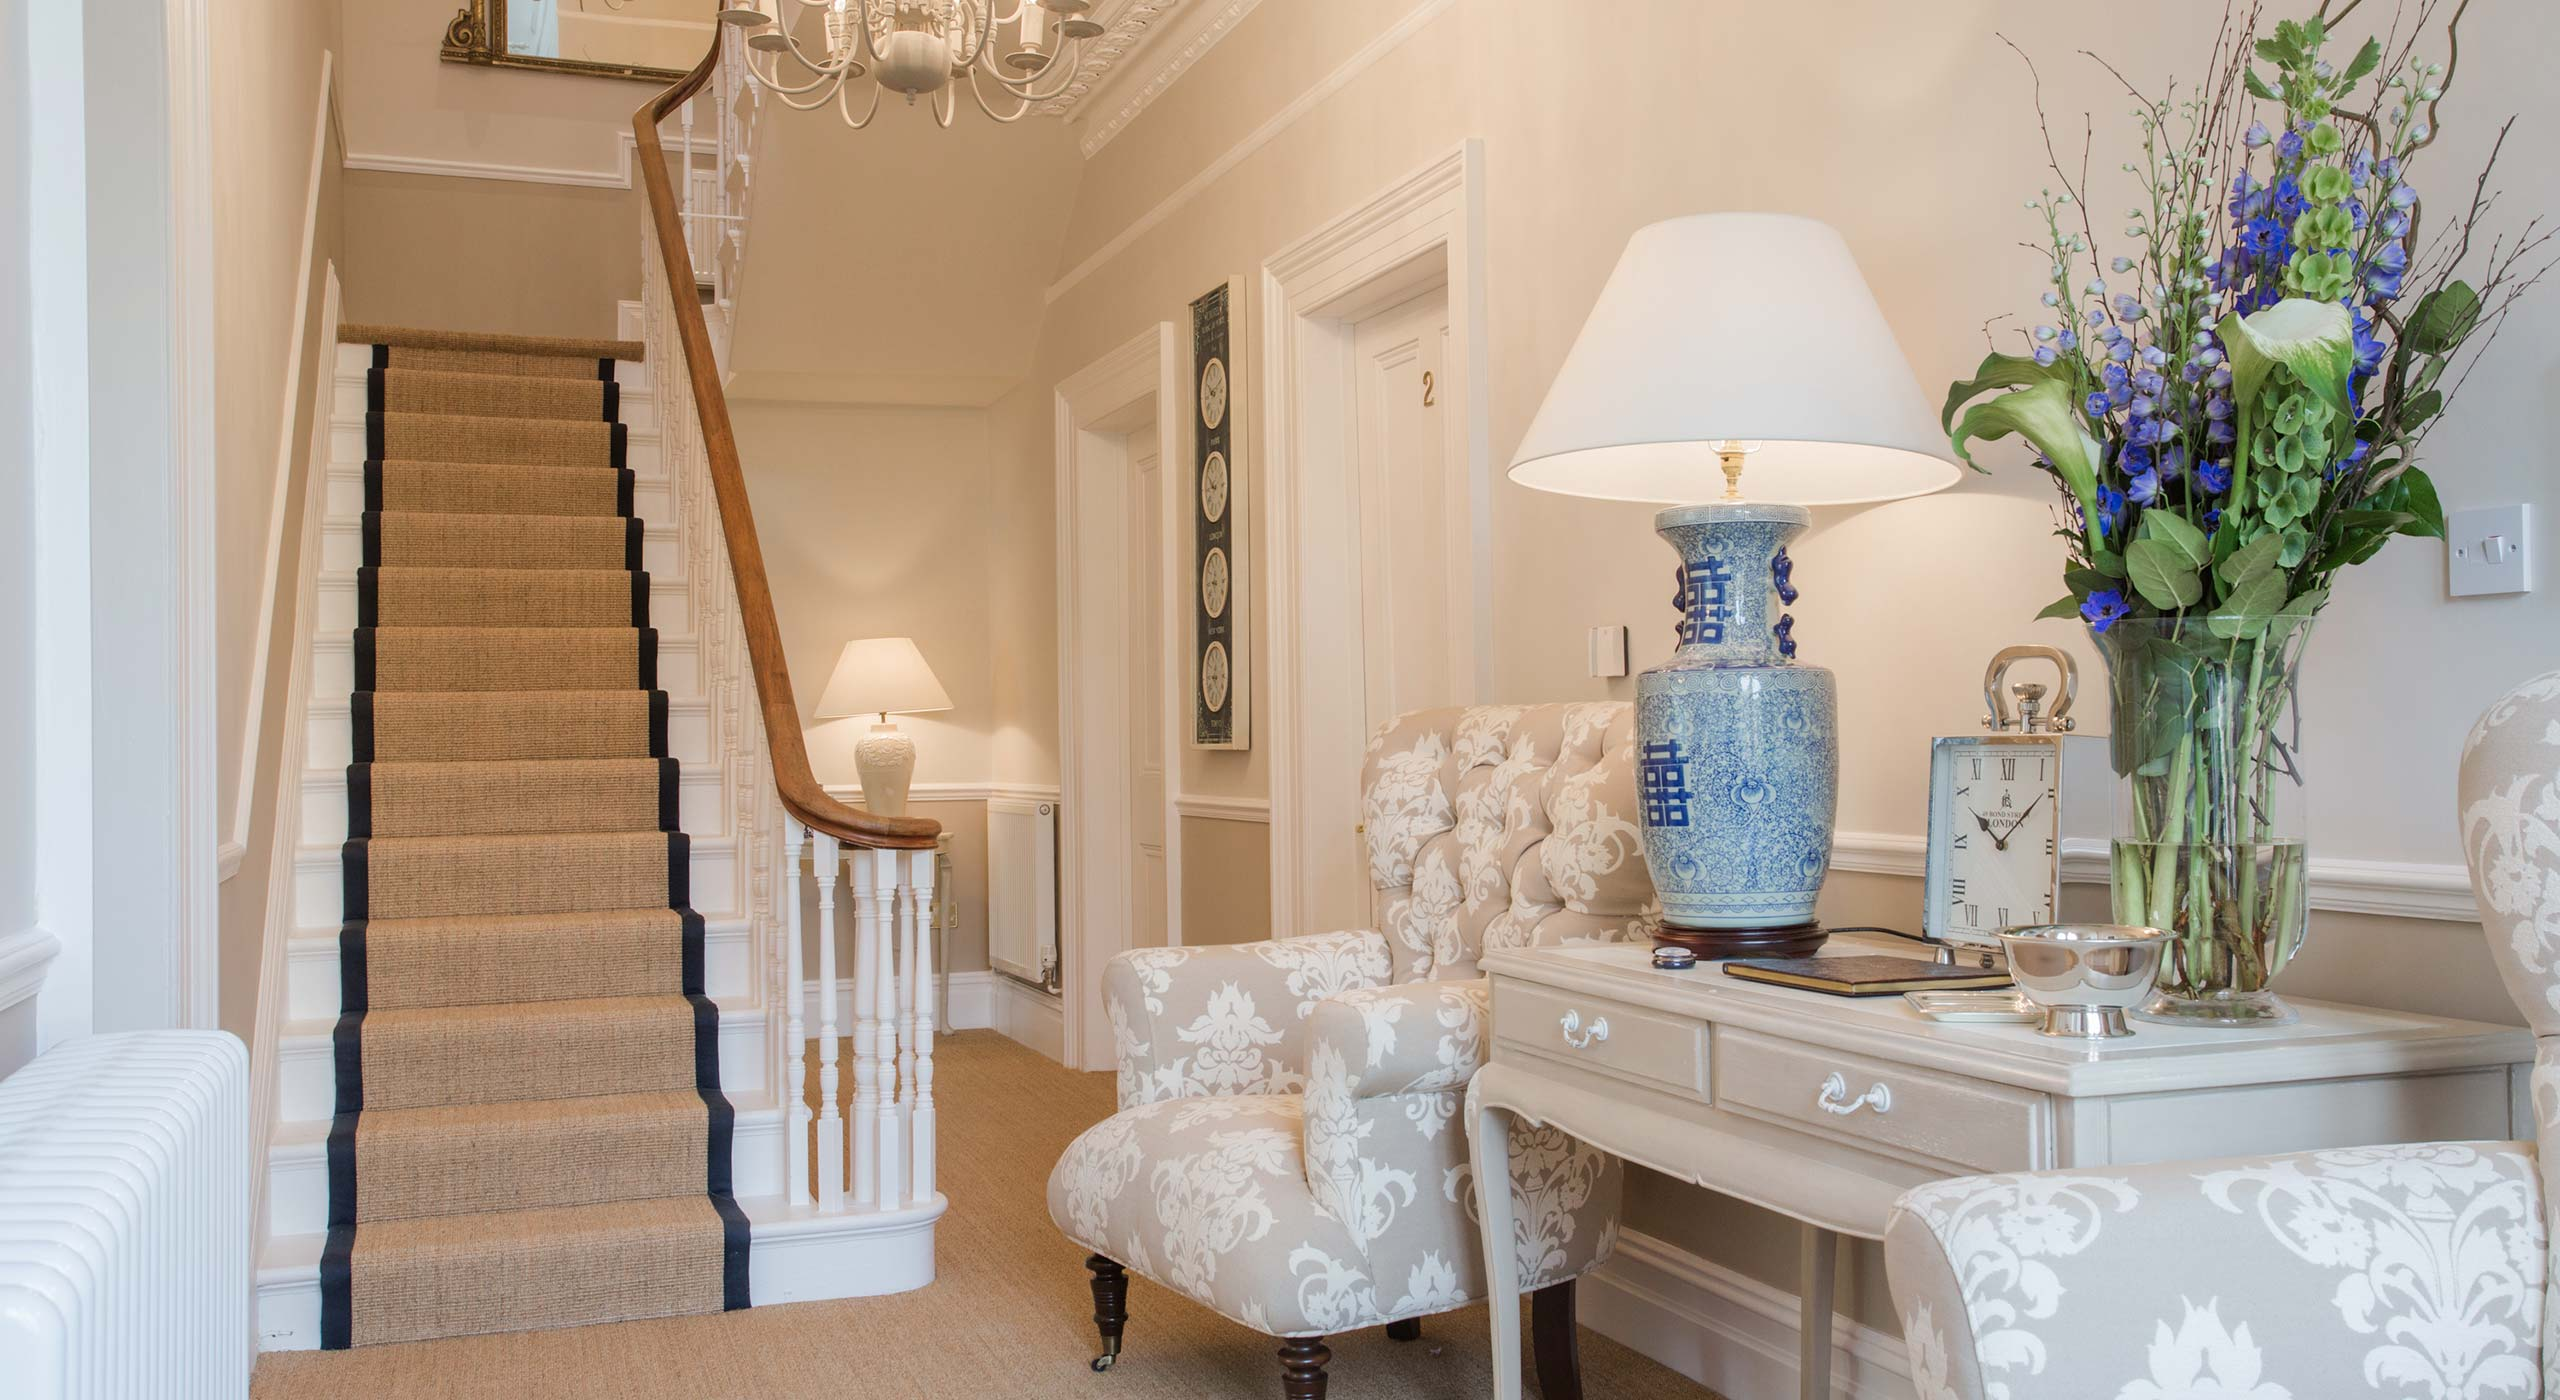 About Grays Bath Boutique B&B 12